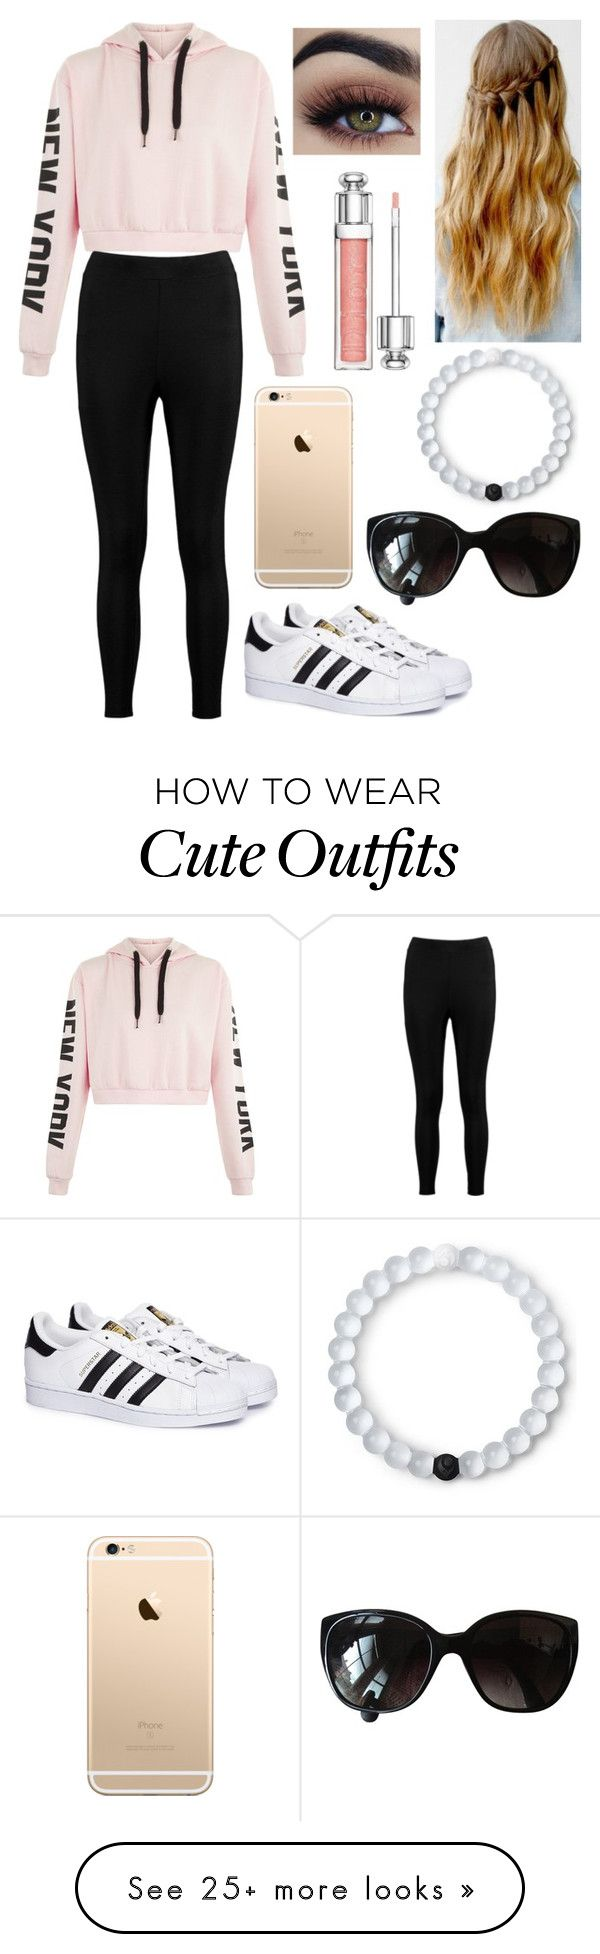 """""""Cute Outfit for A Chill Day"""" by ashrushzoo on Polyvore featuring Boohoo, adidas, Chanel, Lokai and Christian Dior https://twitter.com/ShoesEgminfmn/status/895096695293329409"""